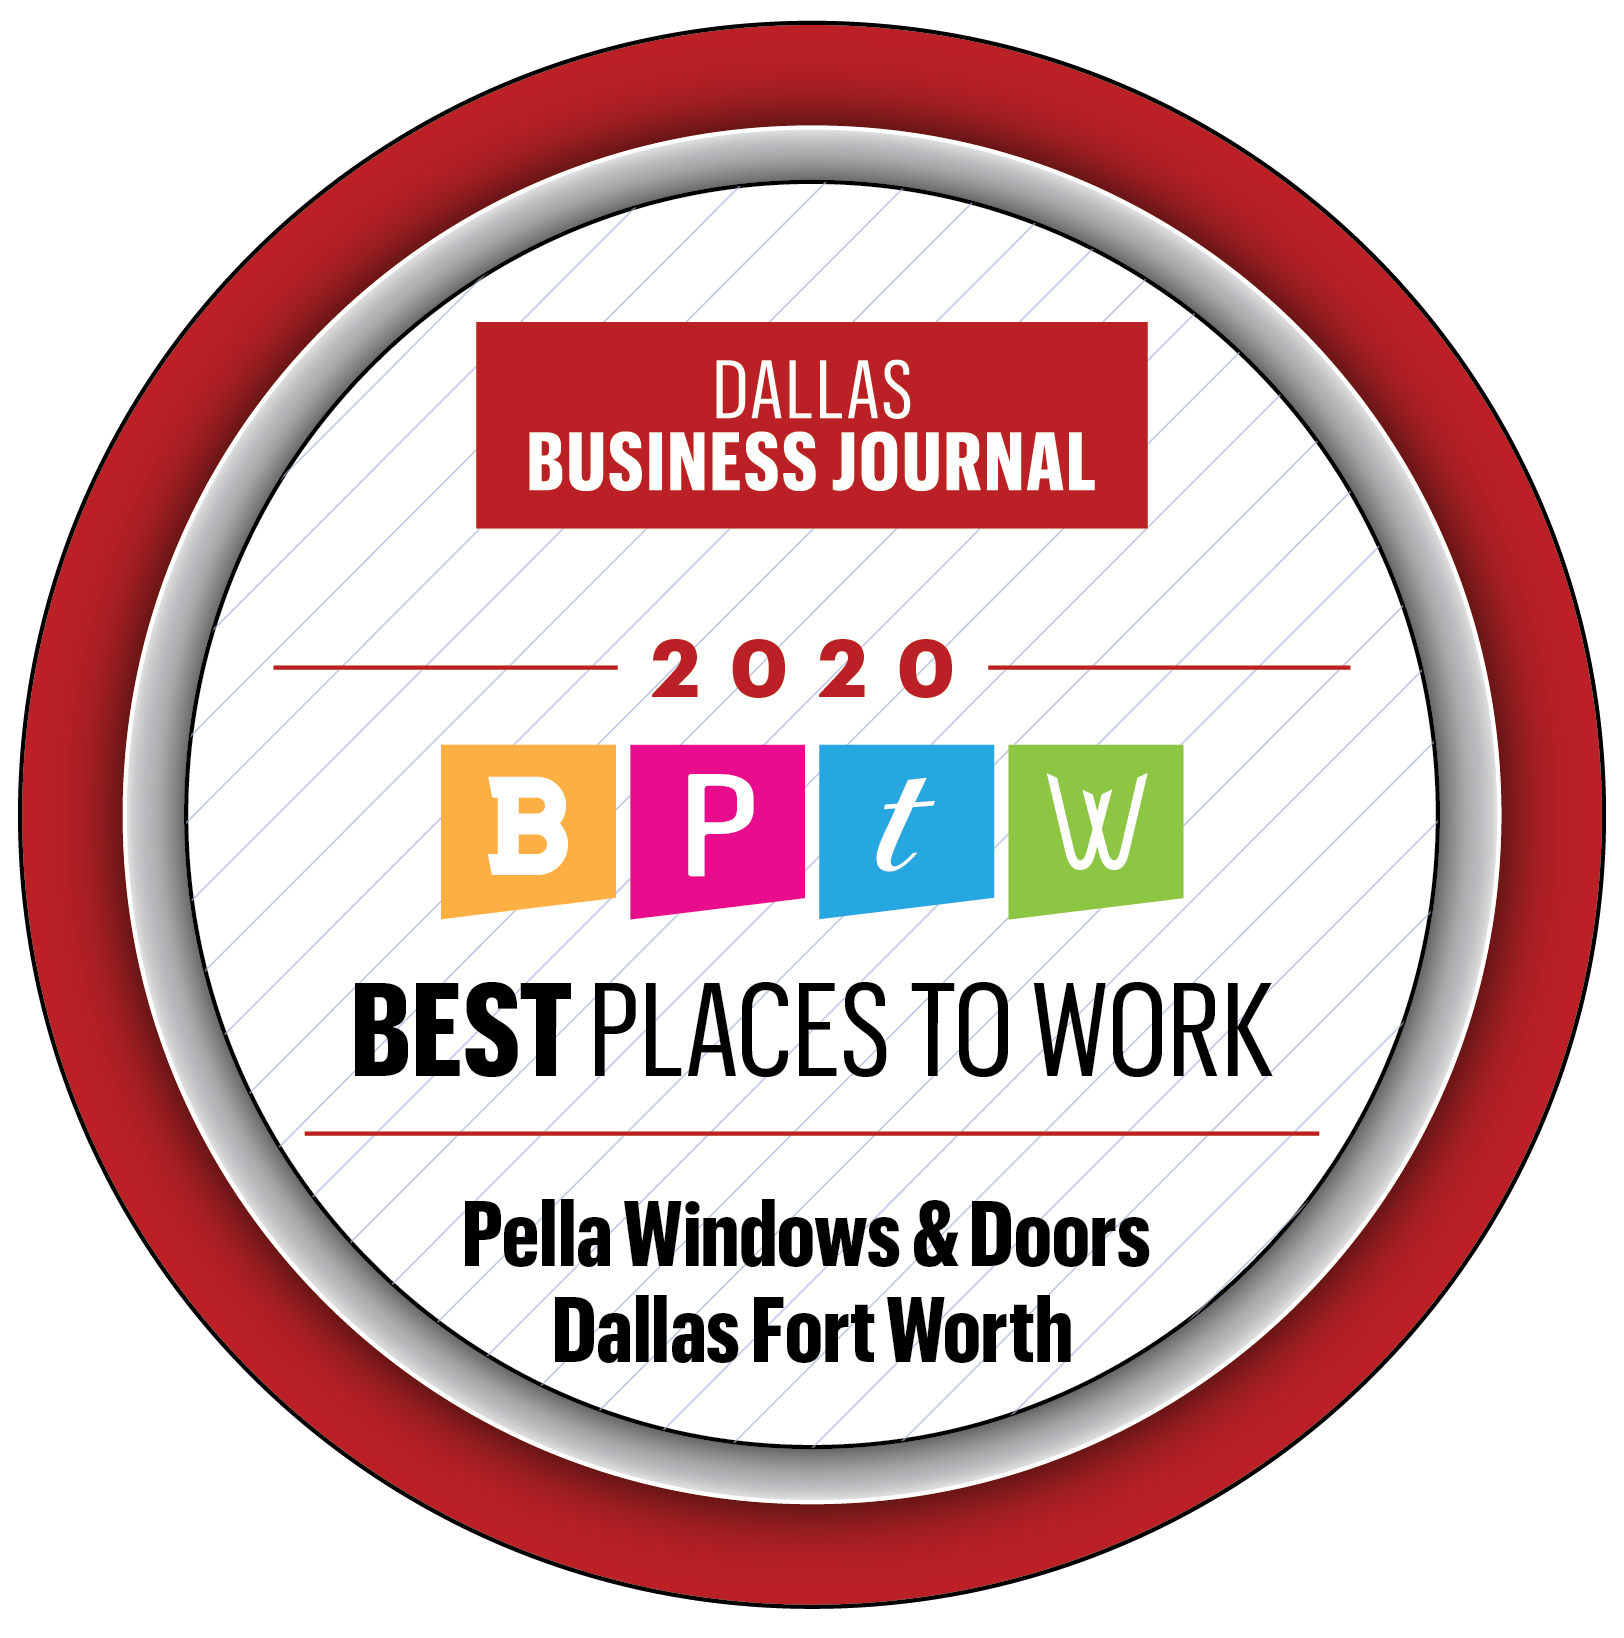 Dallas Business Journal Best Places To Work 2020